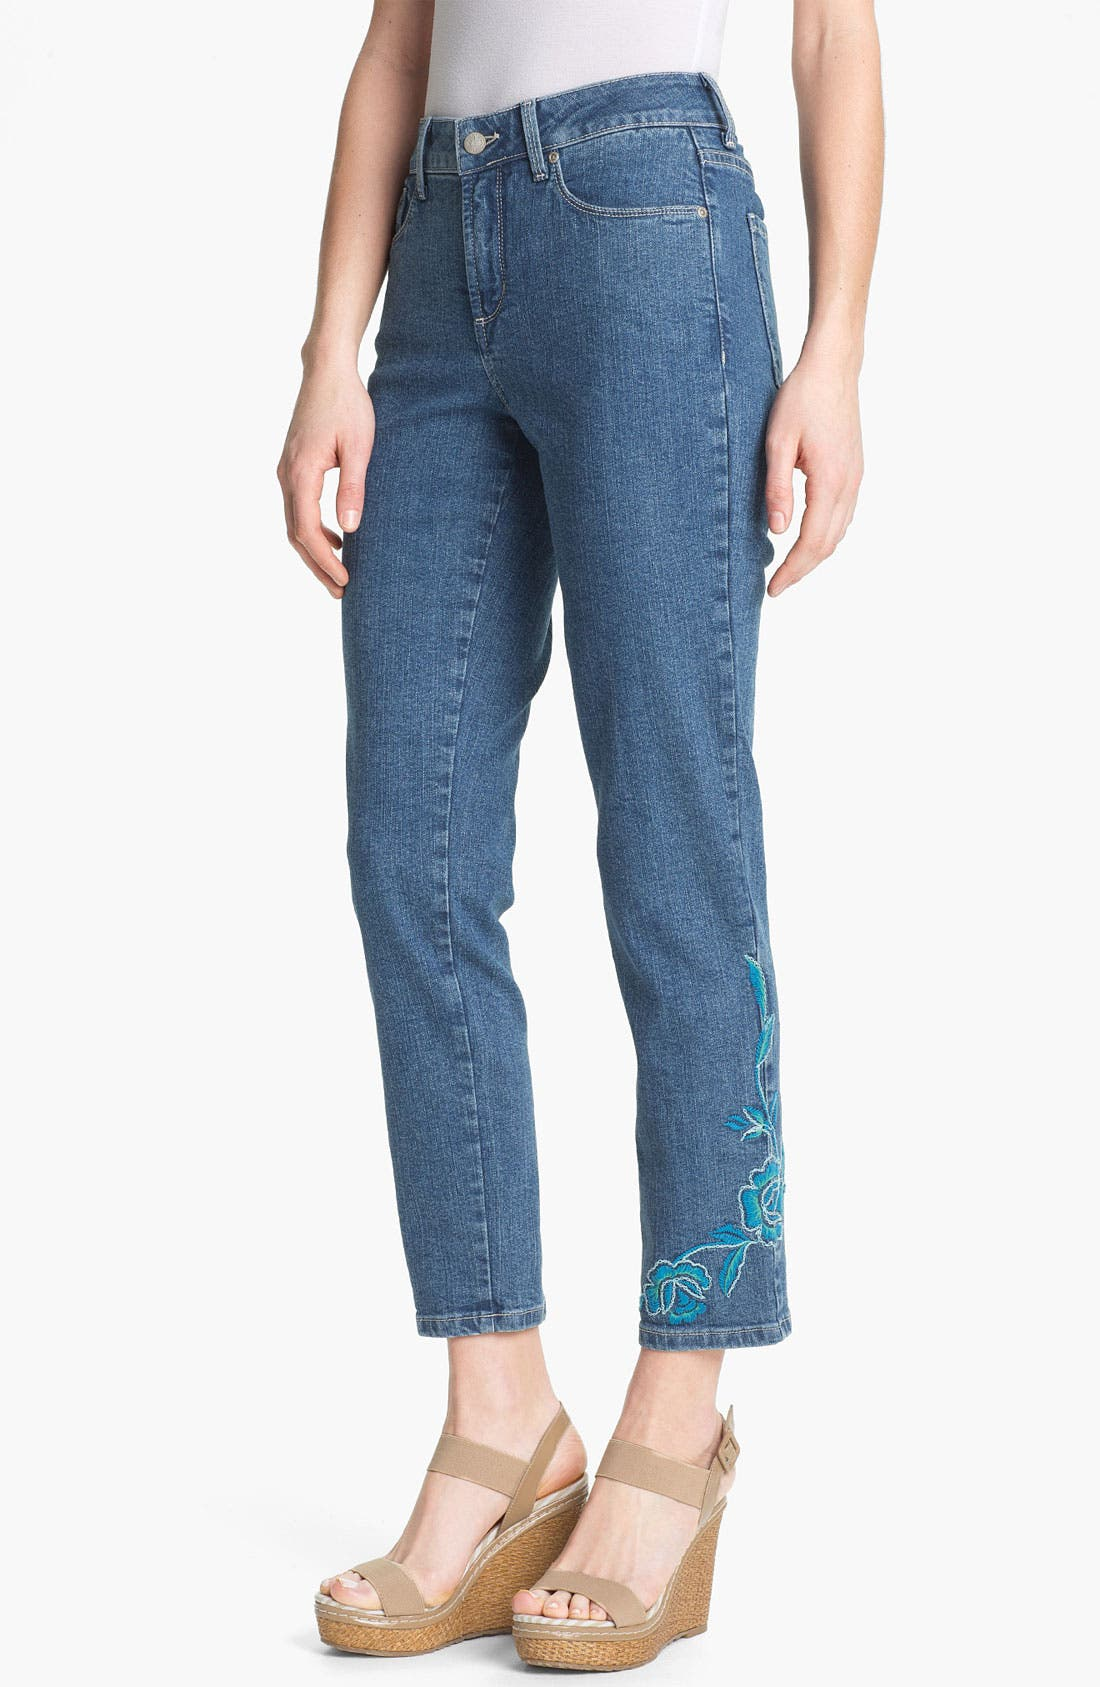 Main Image - NYDJ 'Alisha' Embroidered Skinny Stretch Ankle Jeans